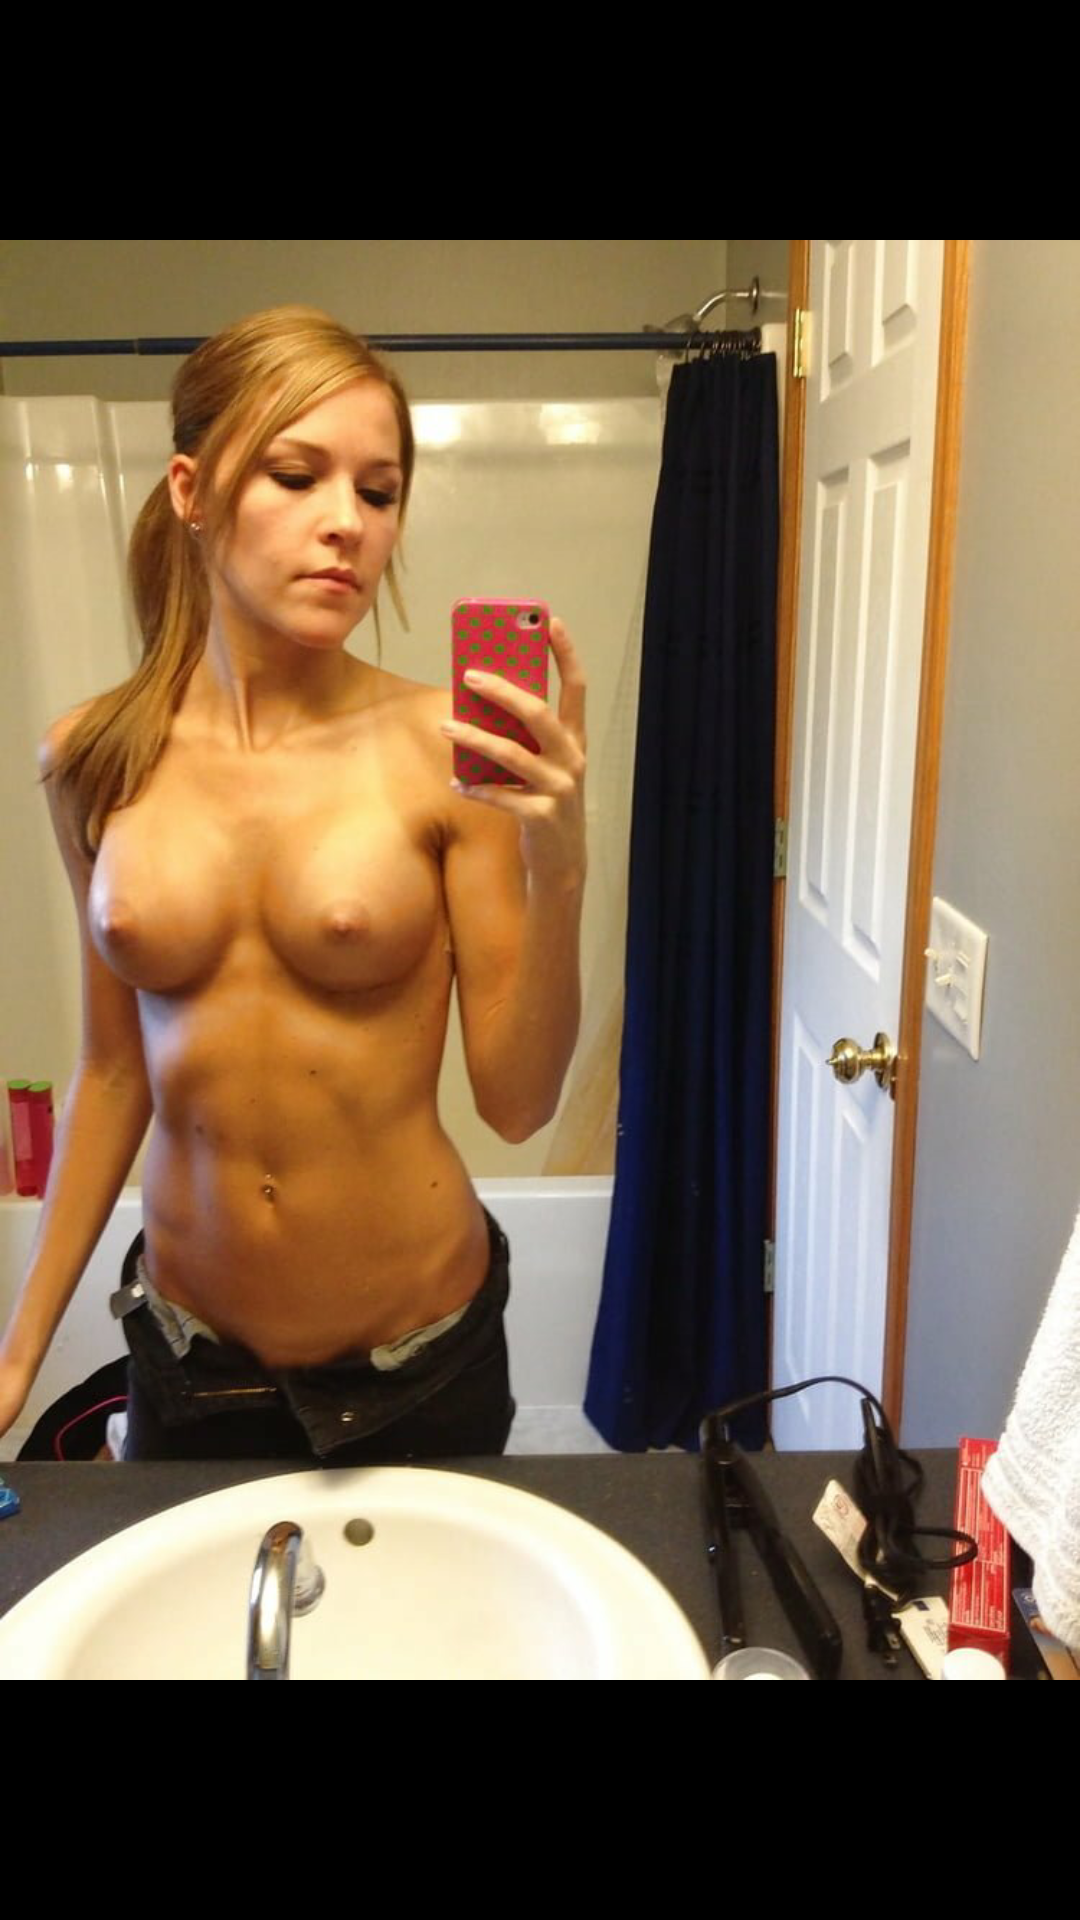 Ohio girls nude selfies